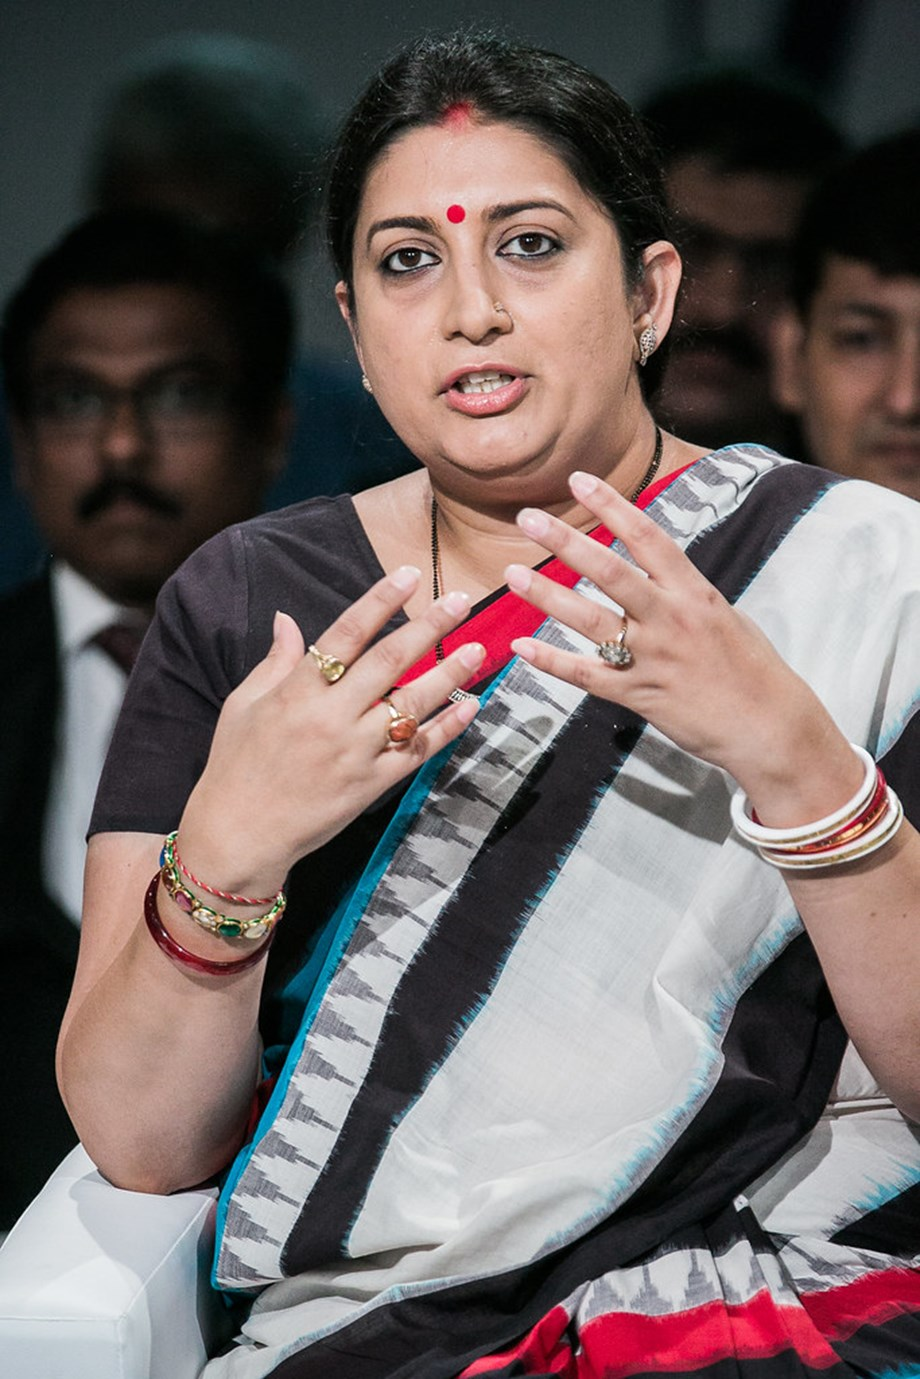 Govt's efforts on economic front visible: Irani